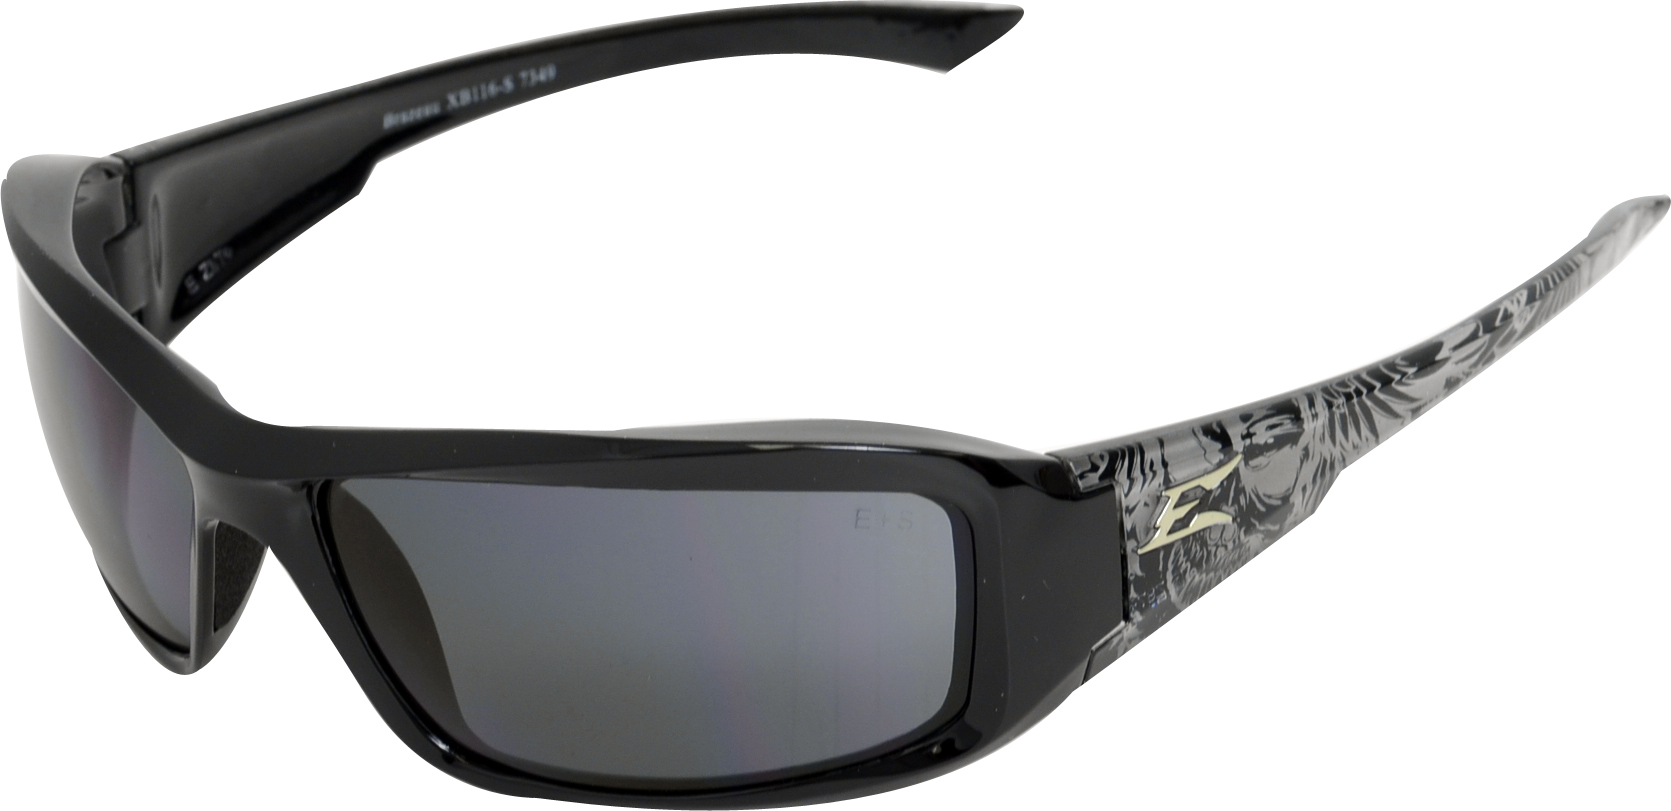 6be9831d0e Best Safety glasses sunglasses - product review from OpticsPlanet.com  customer